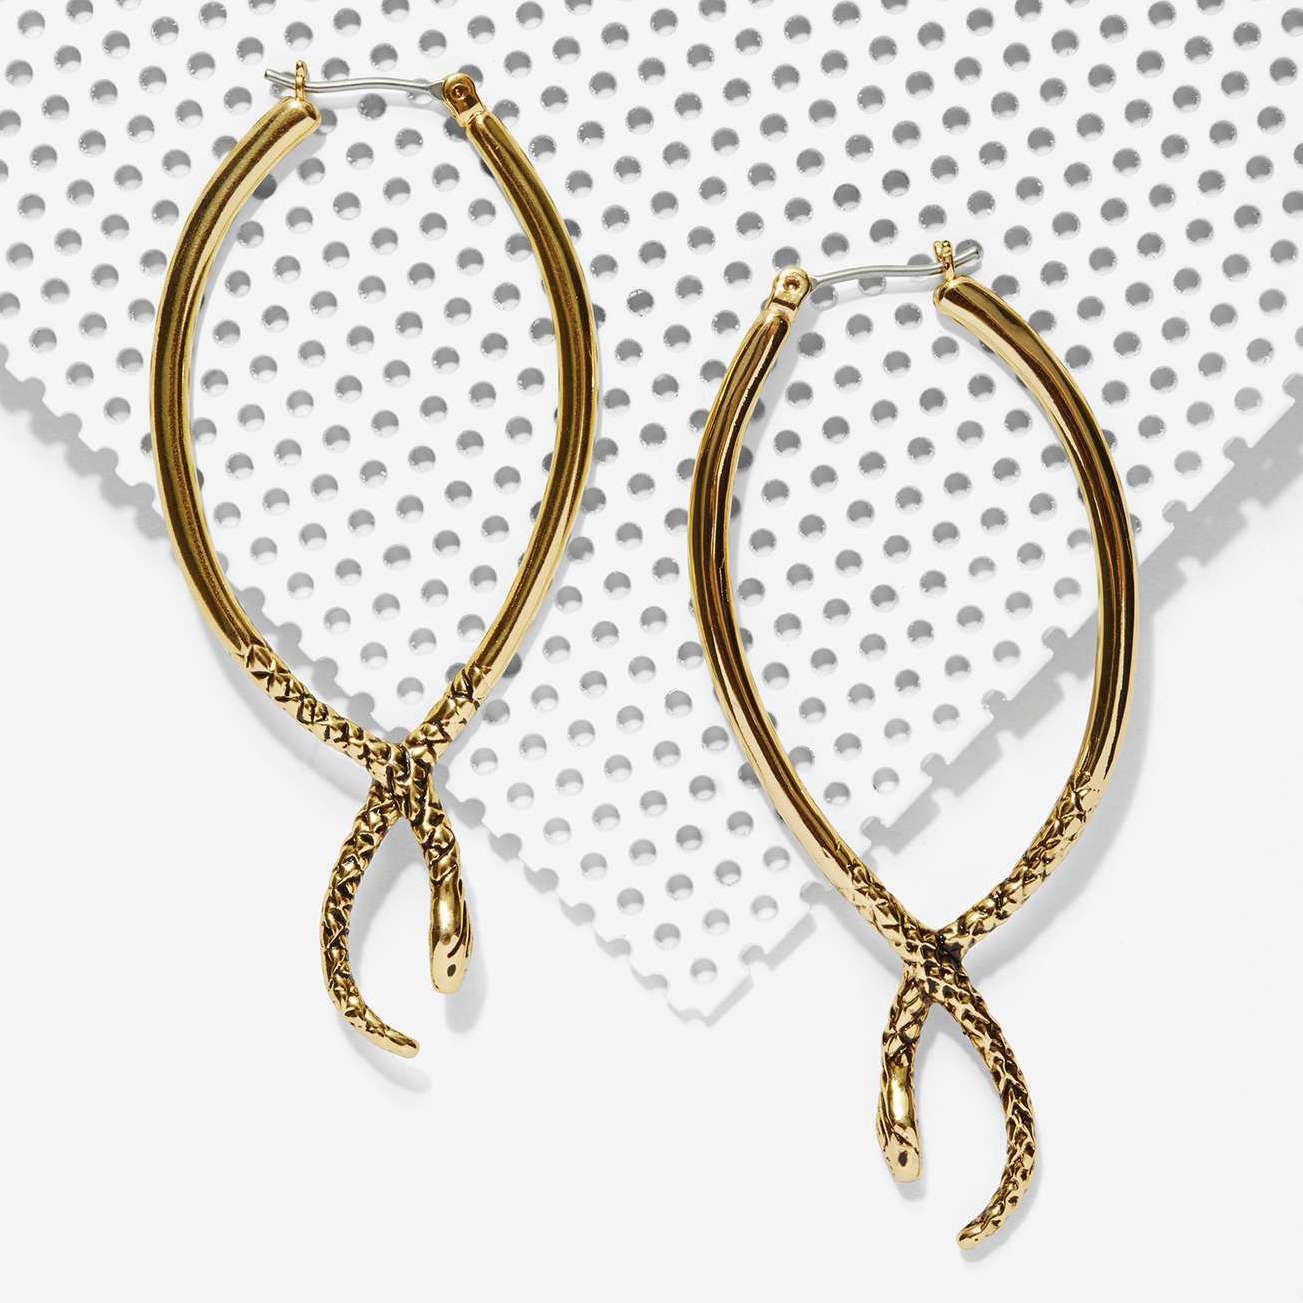 JENNY BIRD 18k Gold Shakti Snake Serpent Hoop Earrings